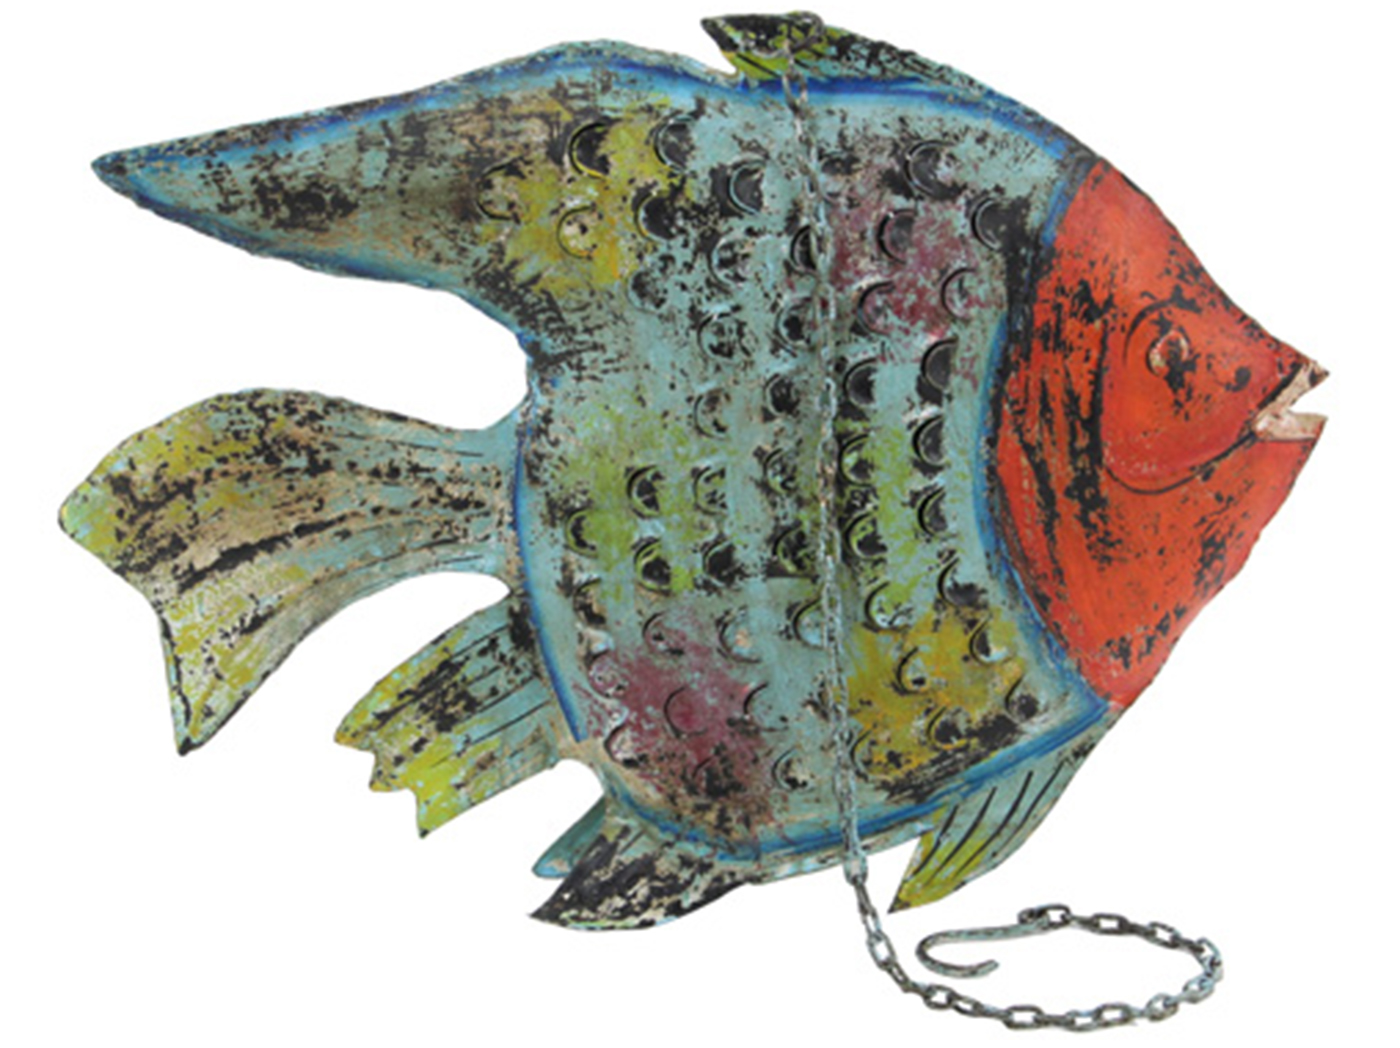 "Blue-Multi Metal Fish Lantern 25""W x 18""H"